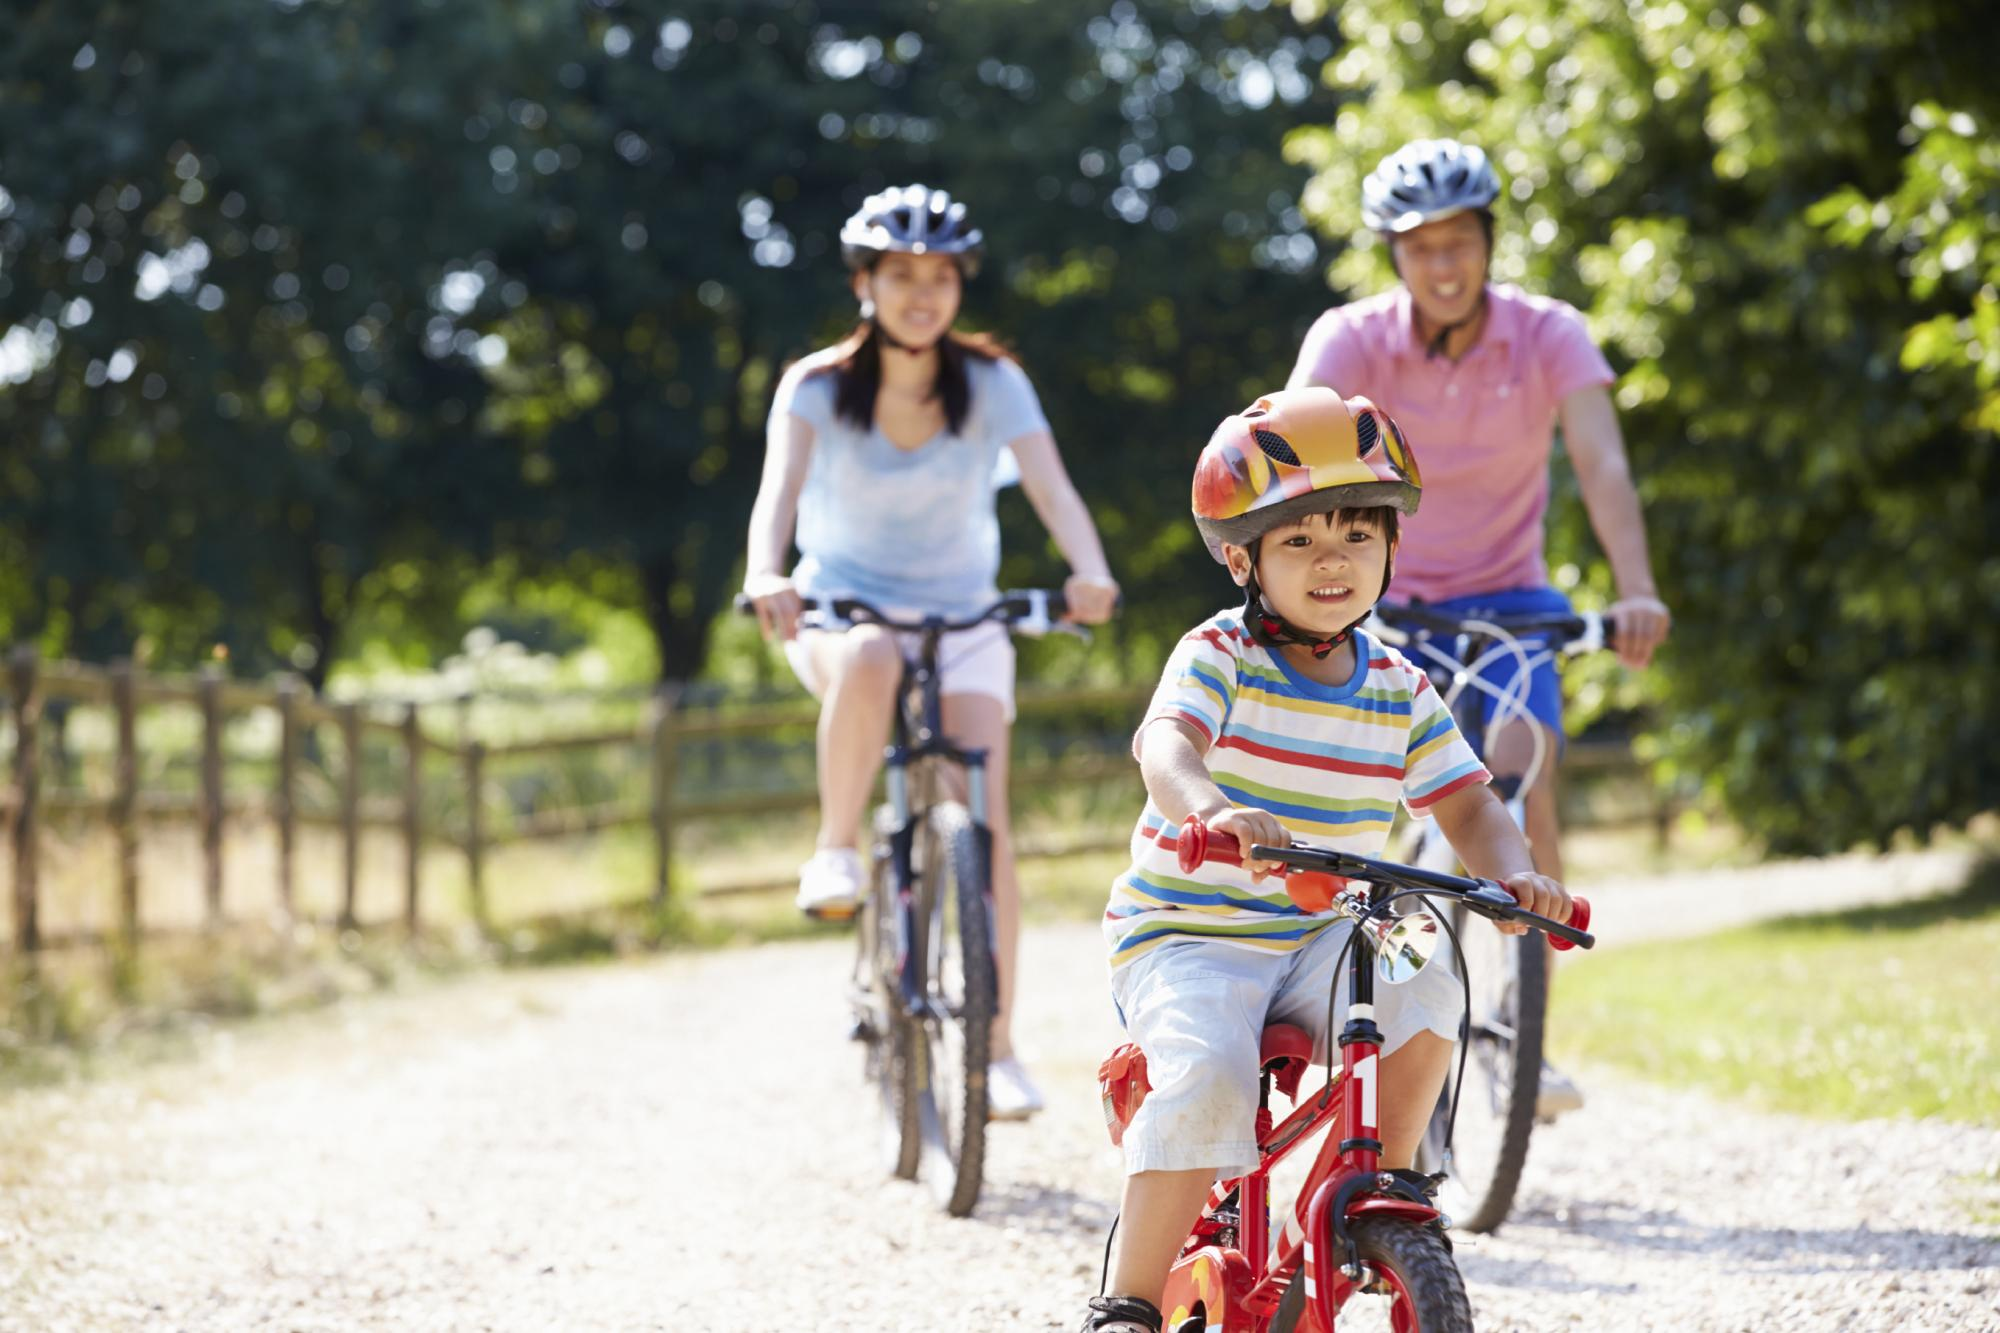 5 Ways for Parents to Get Fit with Their Kids - Precor (US)